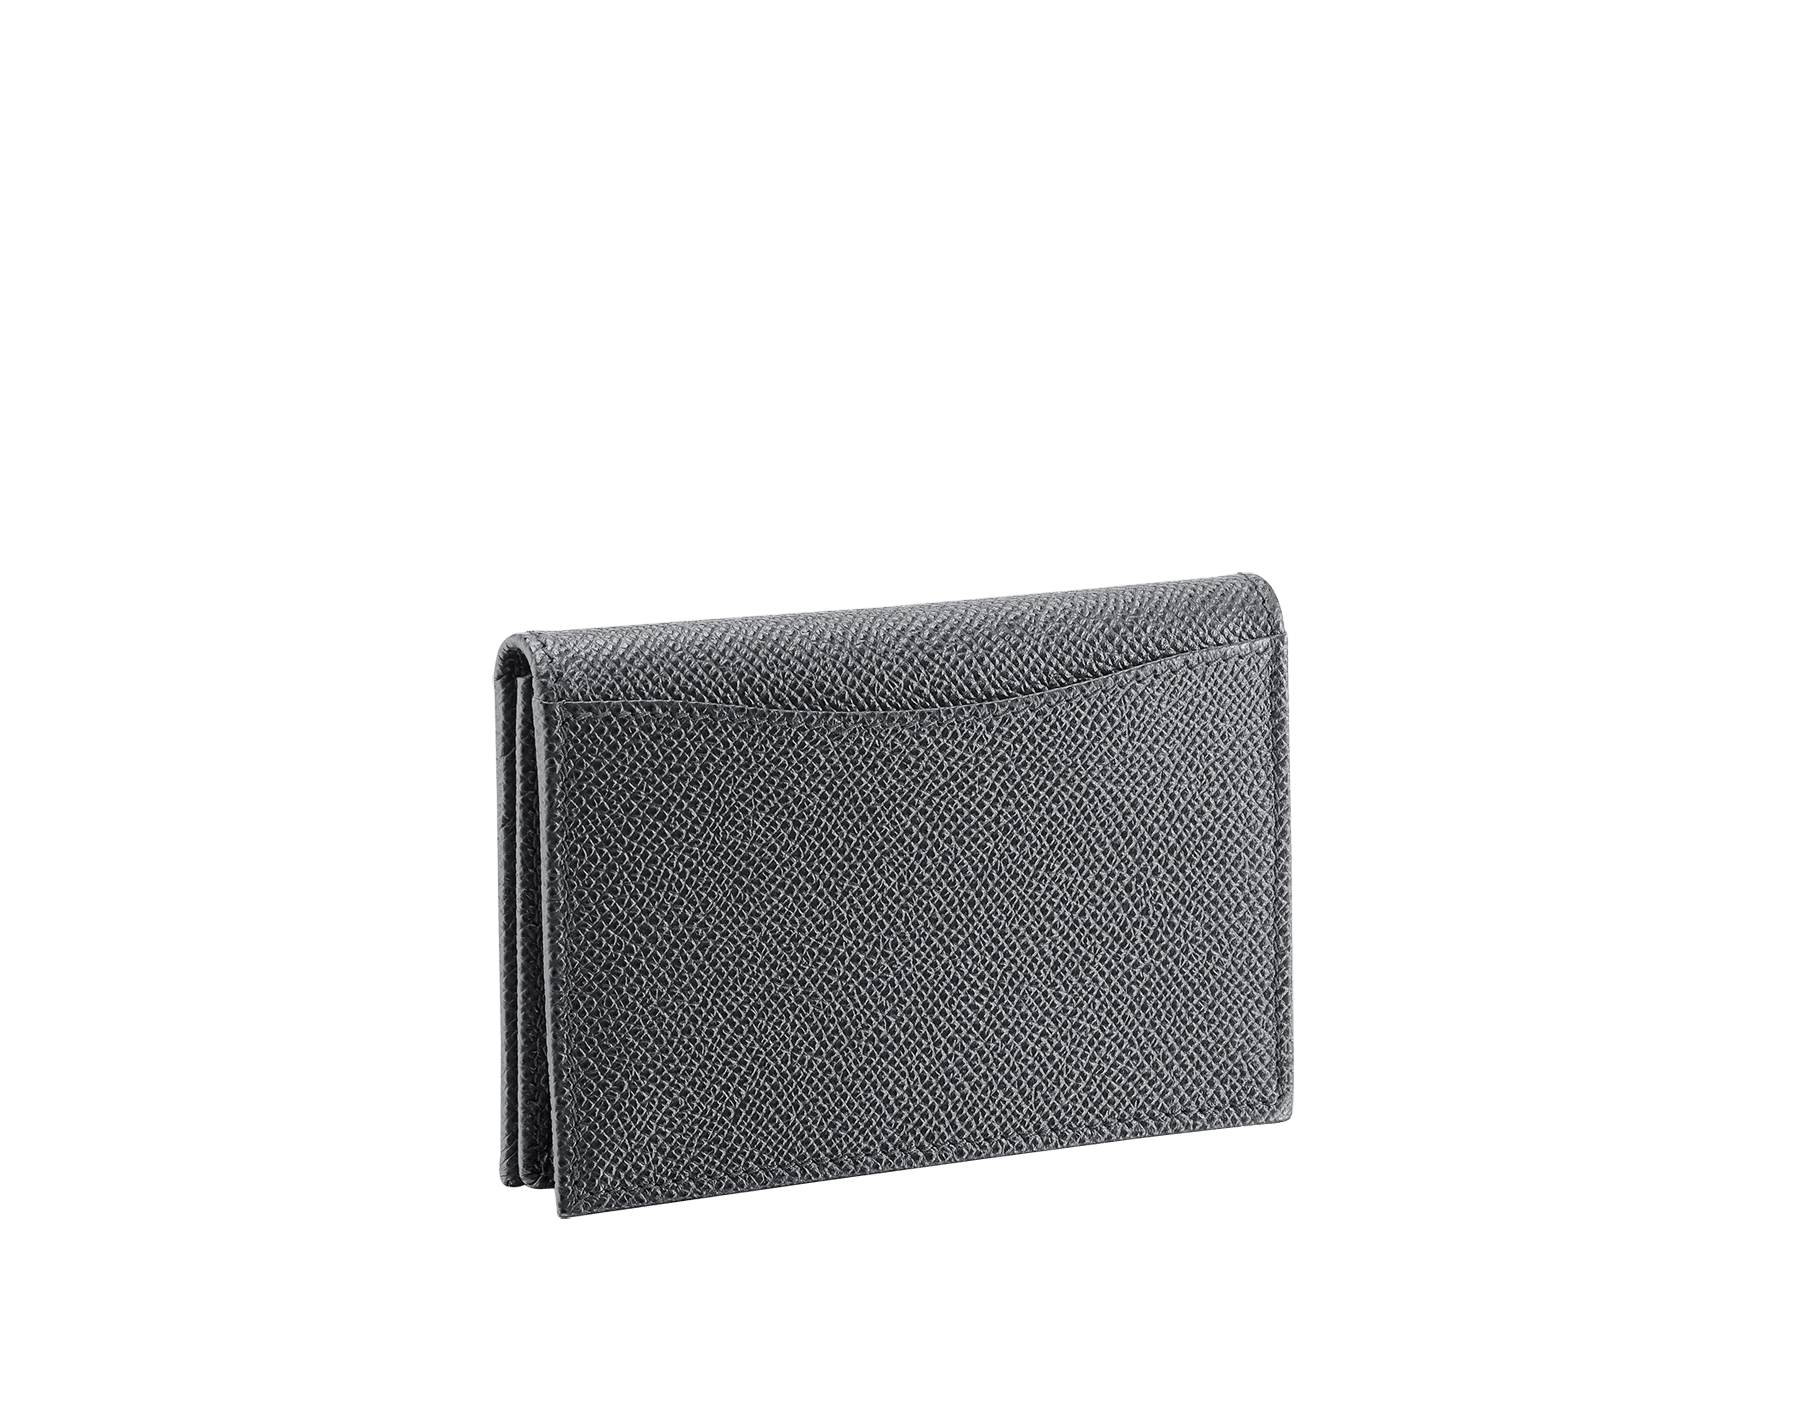 BVLGARI BVLGARI business card holder in charcoal diamond and emerald green grain calf leather, with brass palladium plated logo décor. 289115 image 3